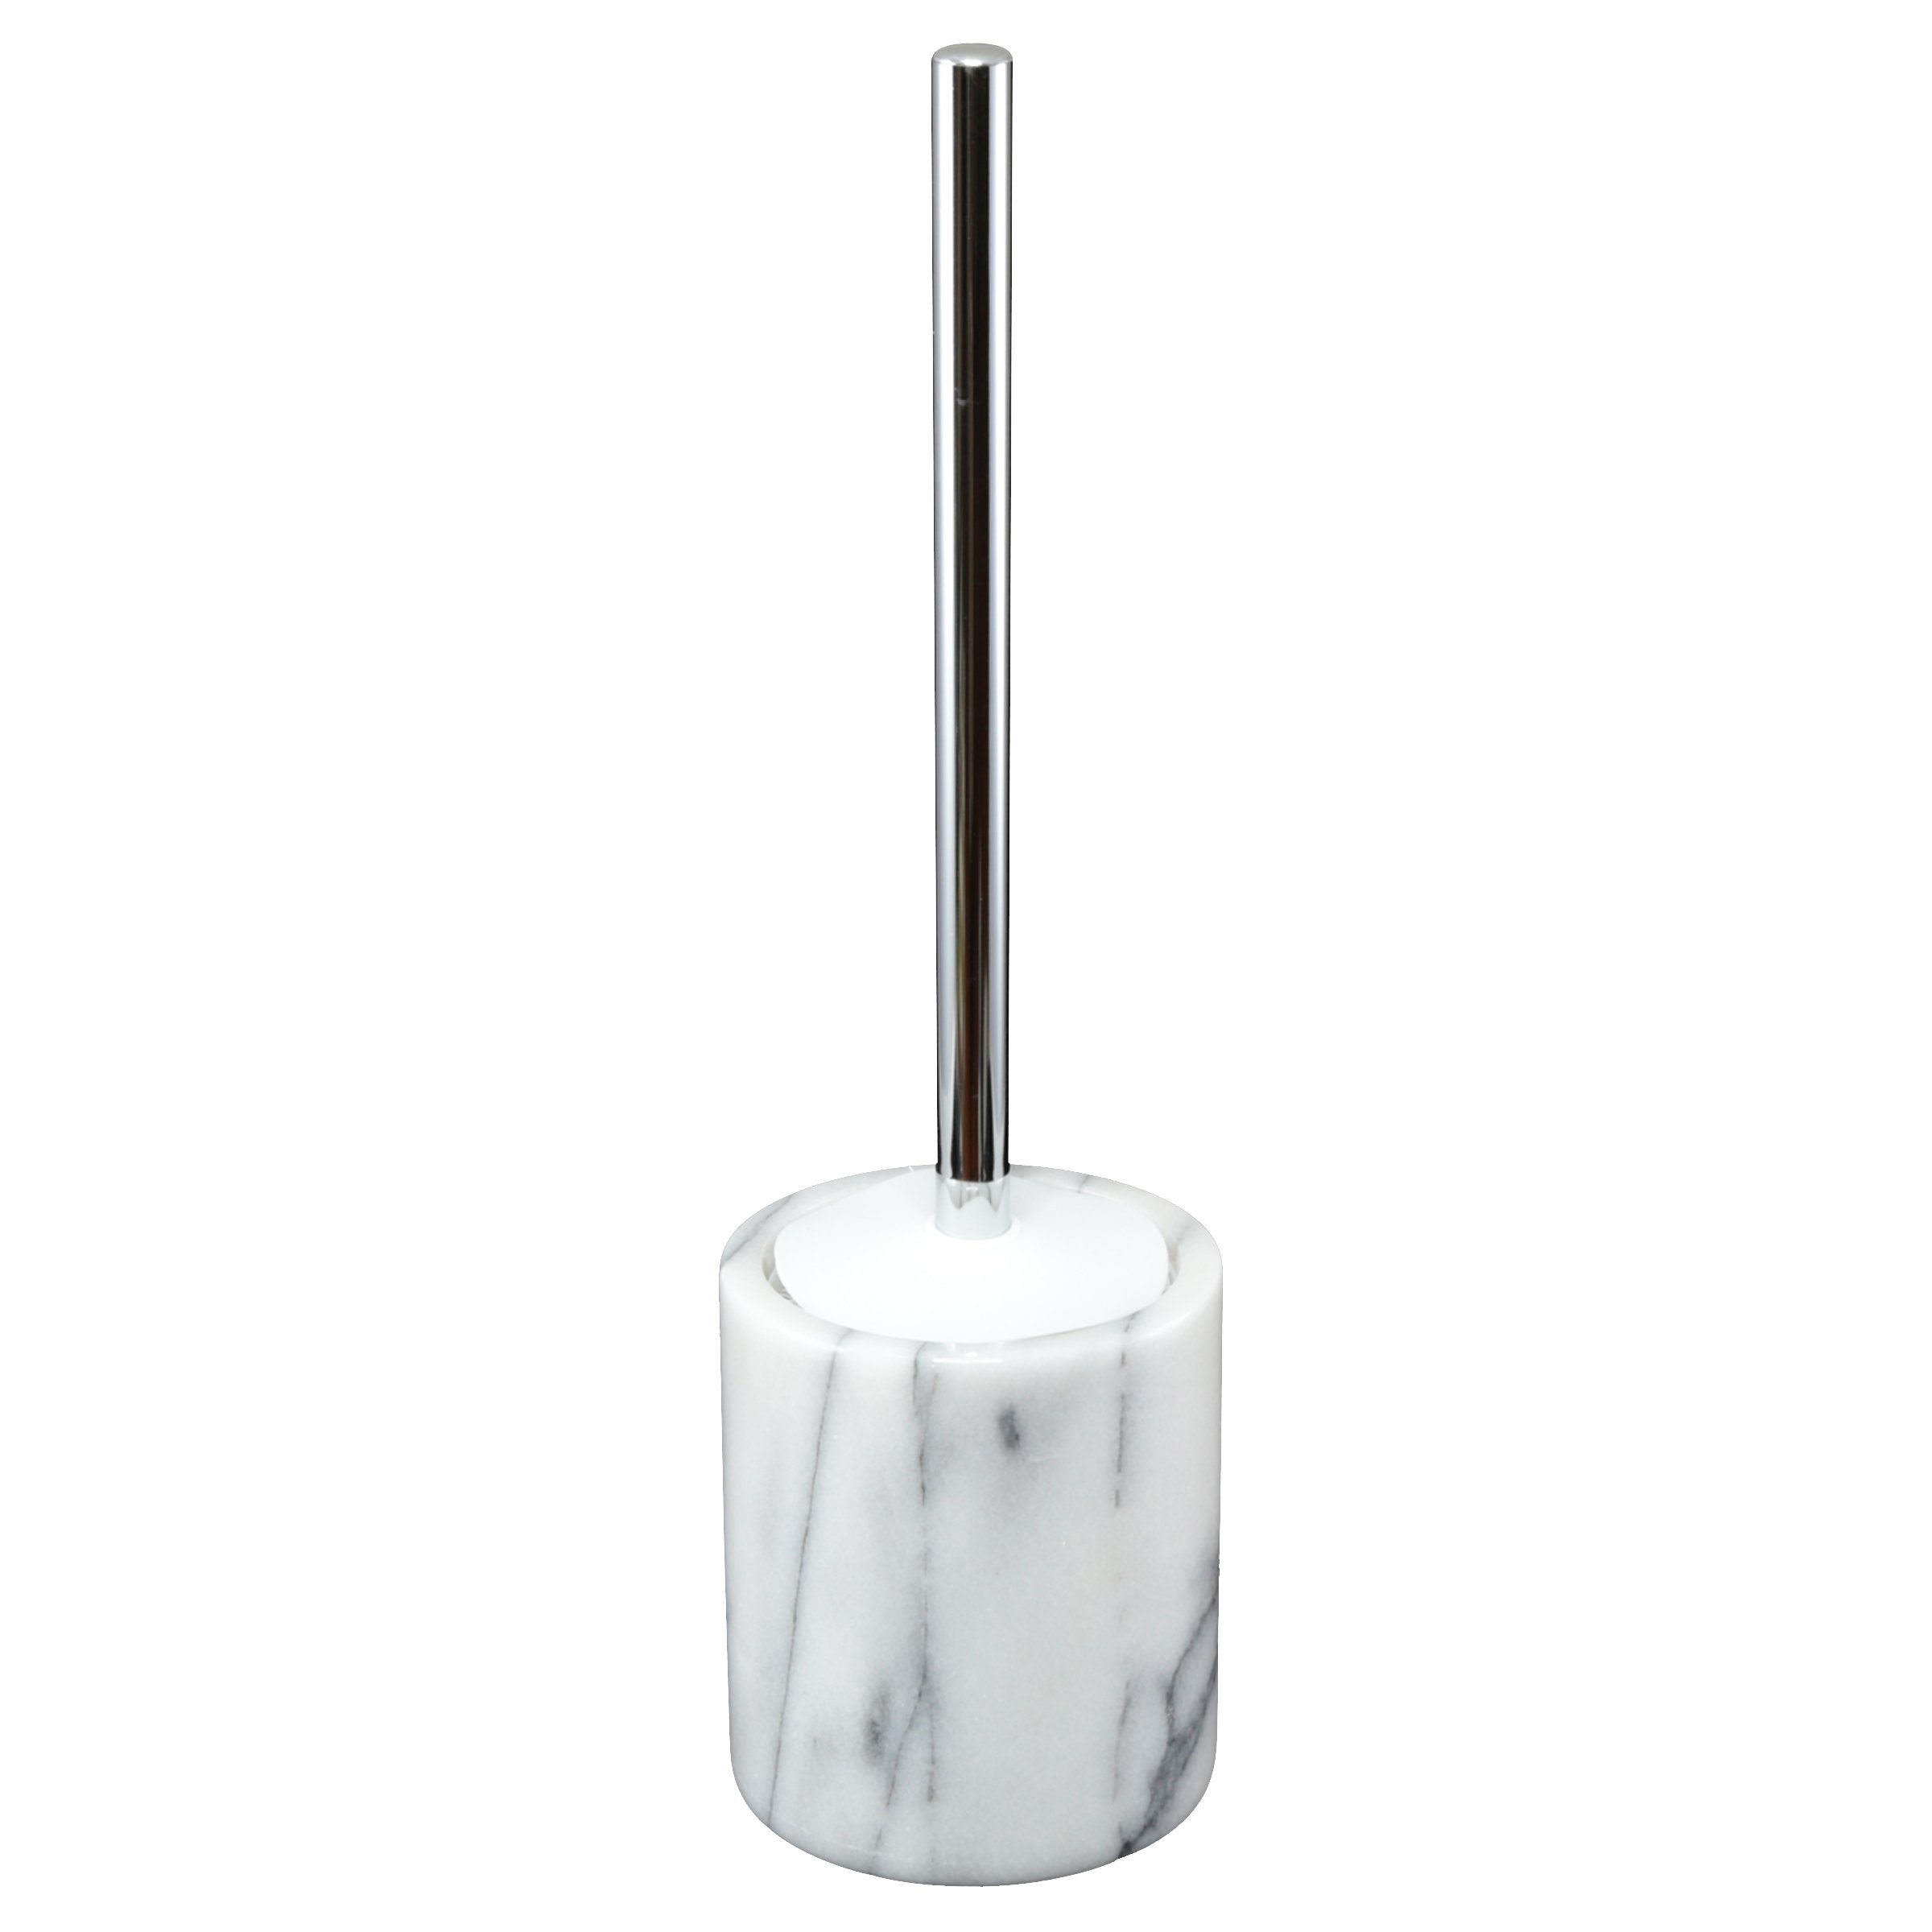 Creative Home Natural Marble Toilet Brush Holder Set with with Silicone Cover, 4-1/4'' Diam. x 14-1/2'' H, White